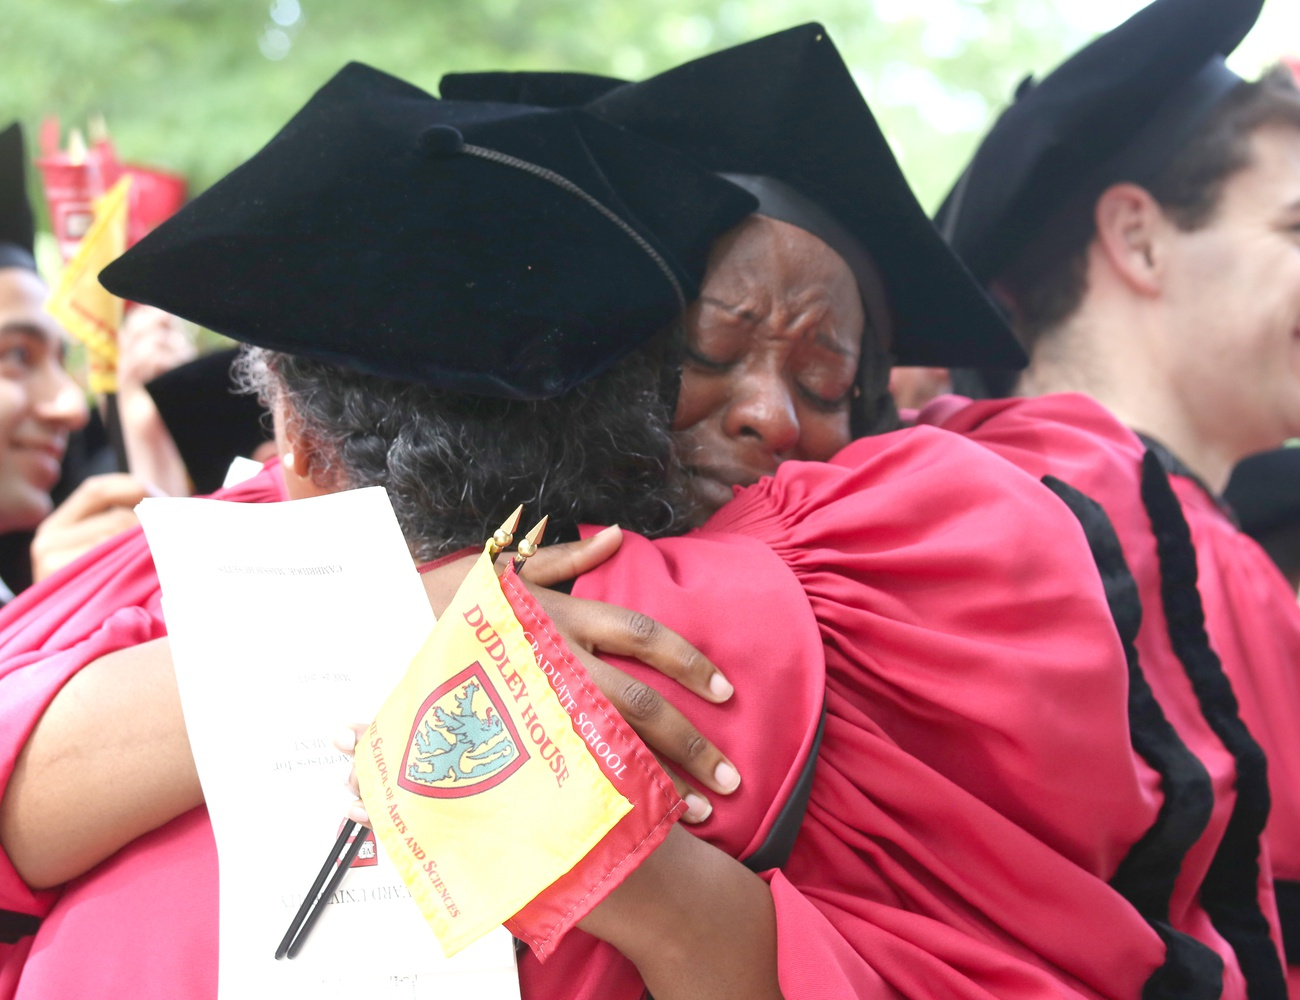 Jovonne J. Bickerstaff, who earned a PhD in Sociology, hugs Jacqueline C. Rivers, who earned a PhD in Sociology and African and African American Studies, as her degree is conferred during Commencement on May 28.